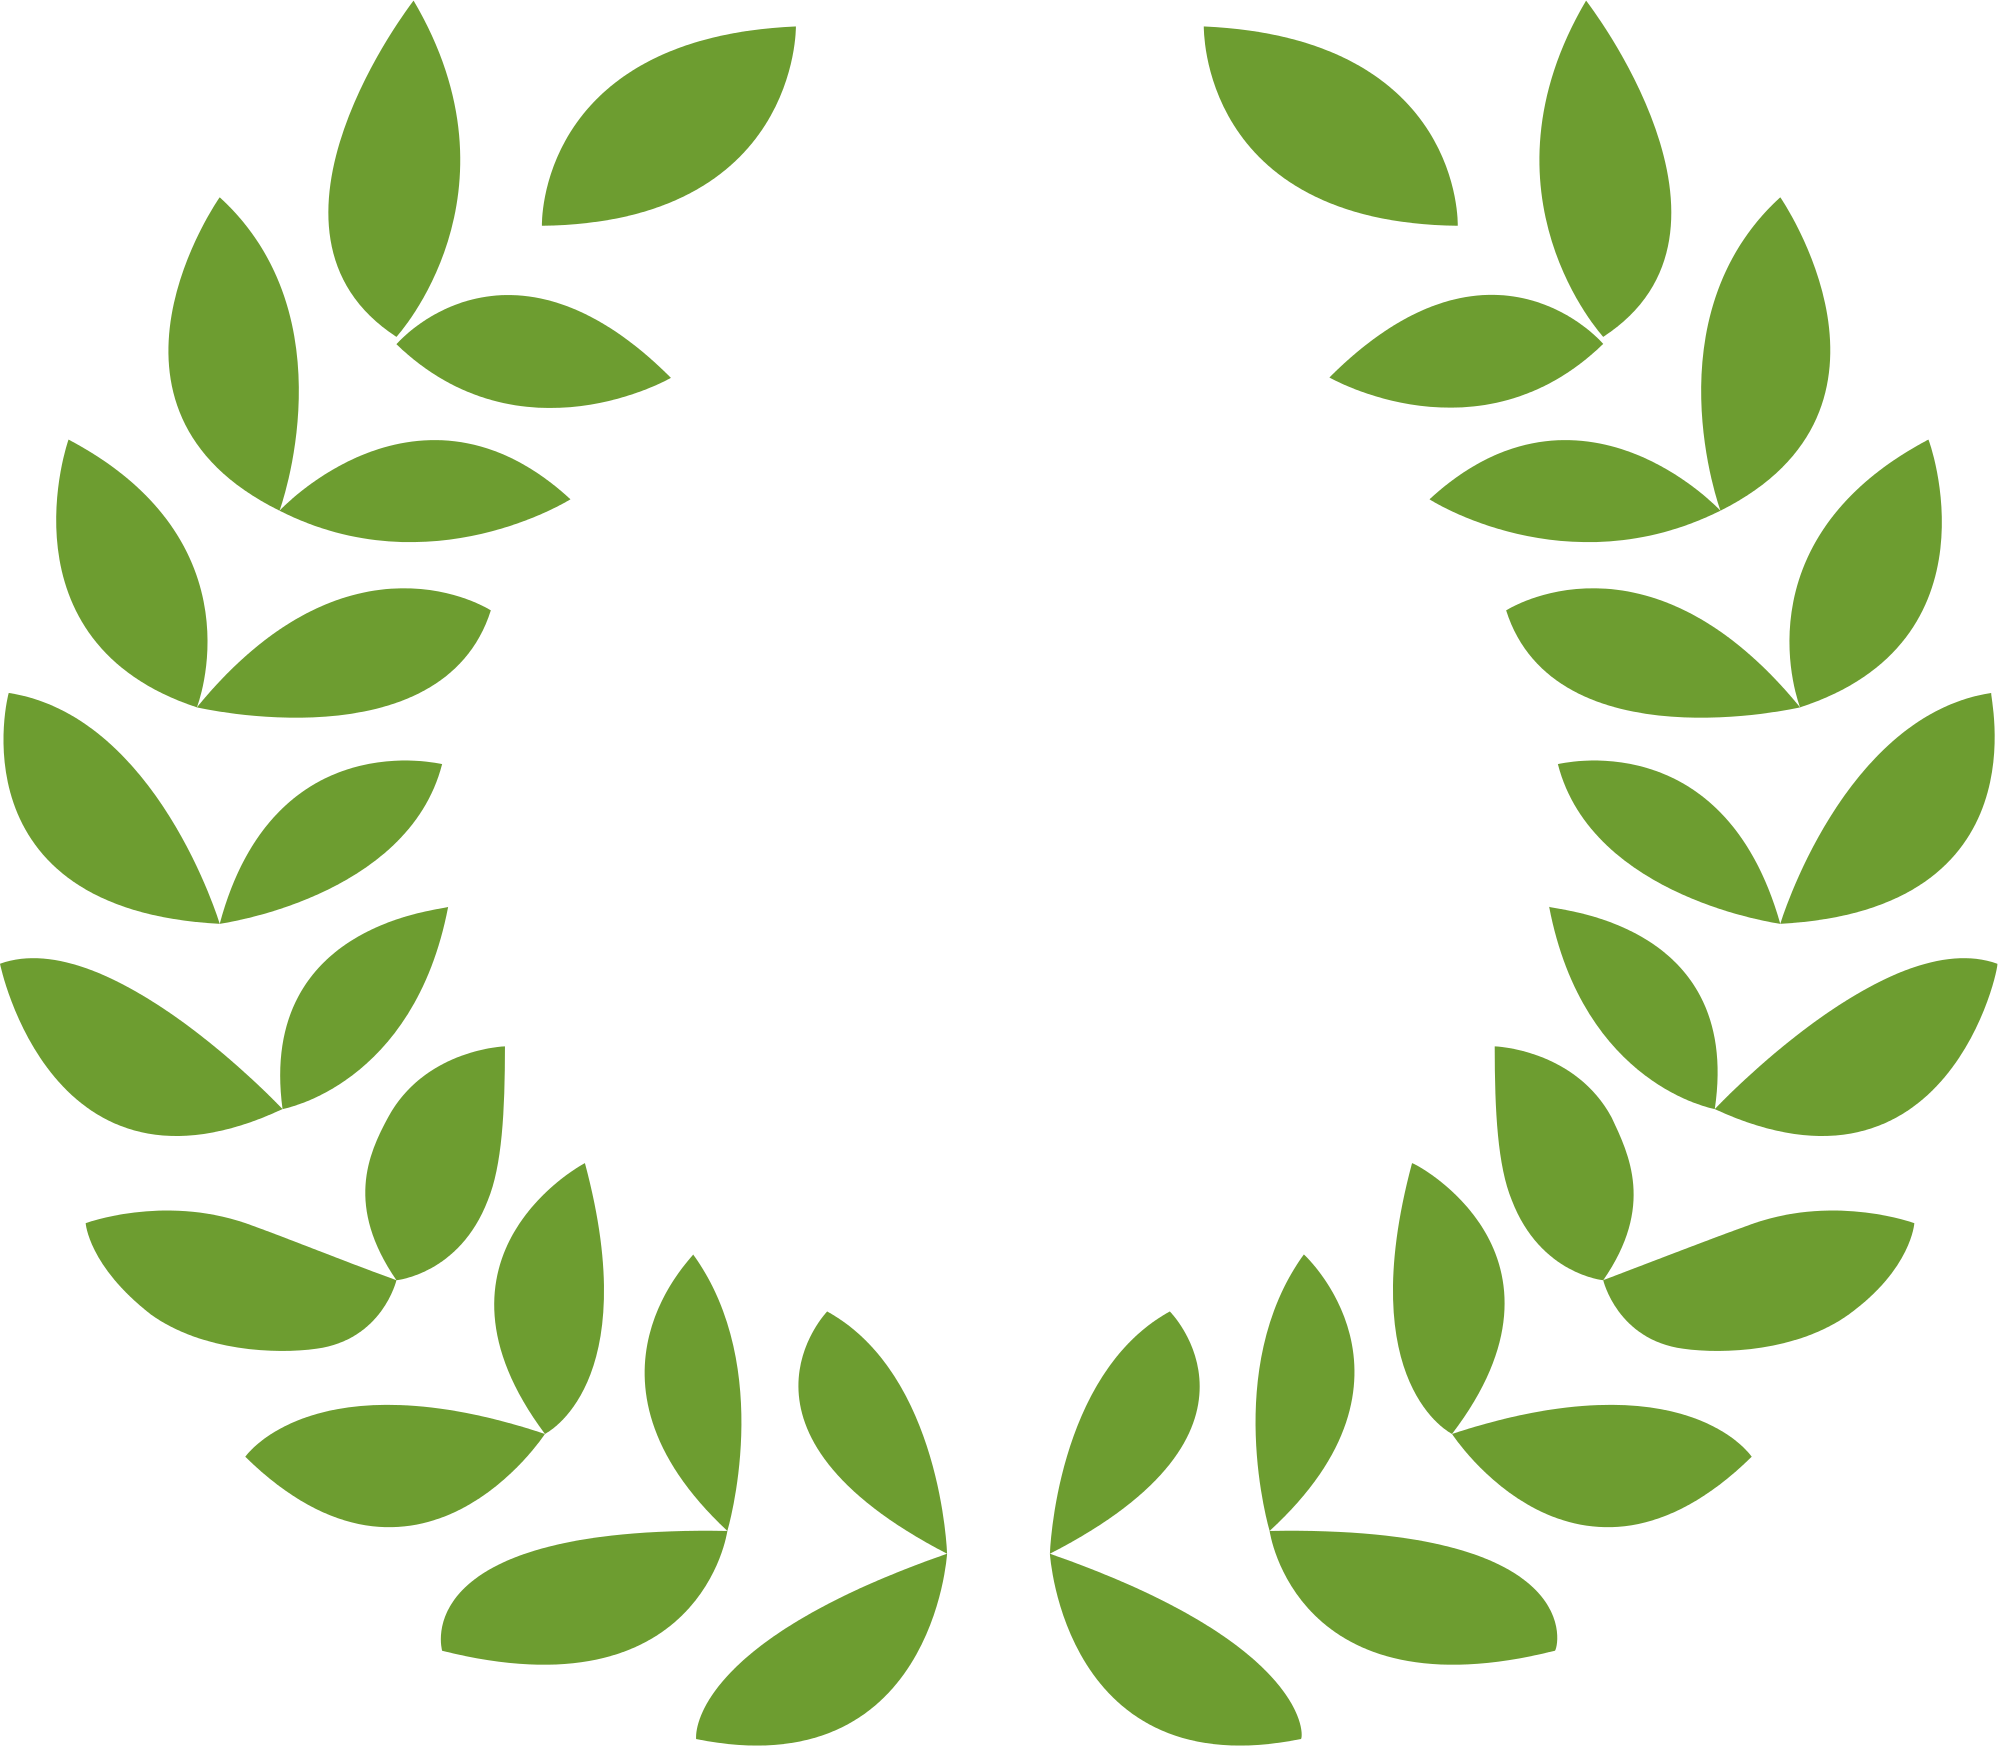 Wreath svg #5, Download drawings